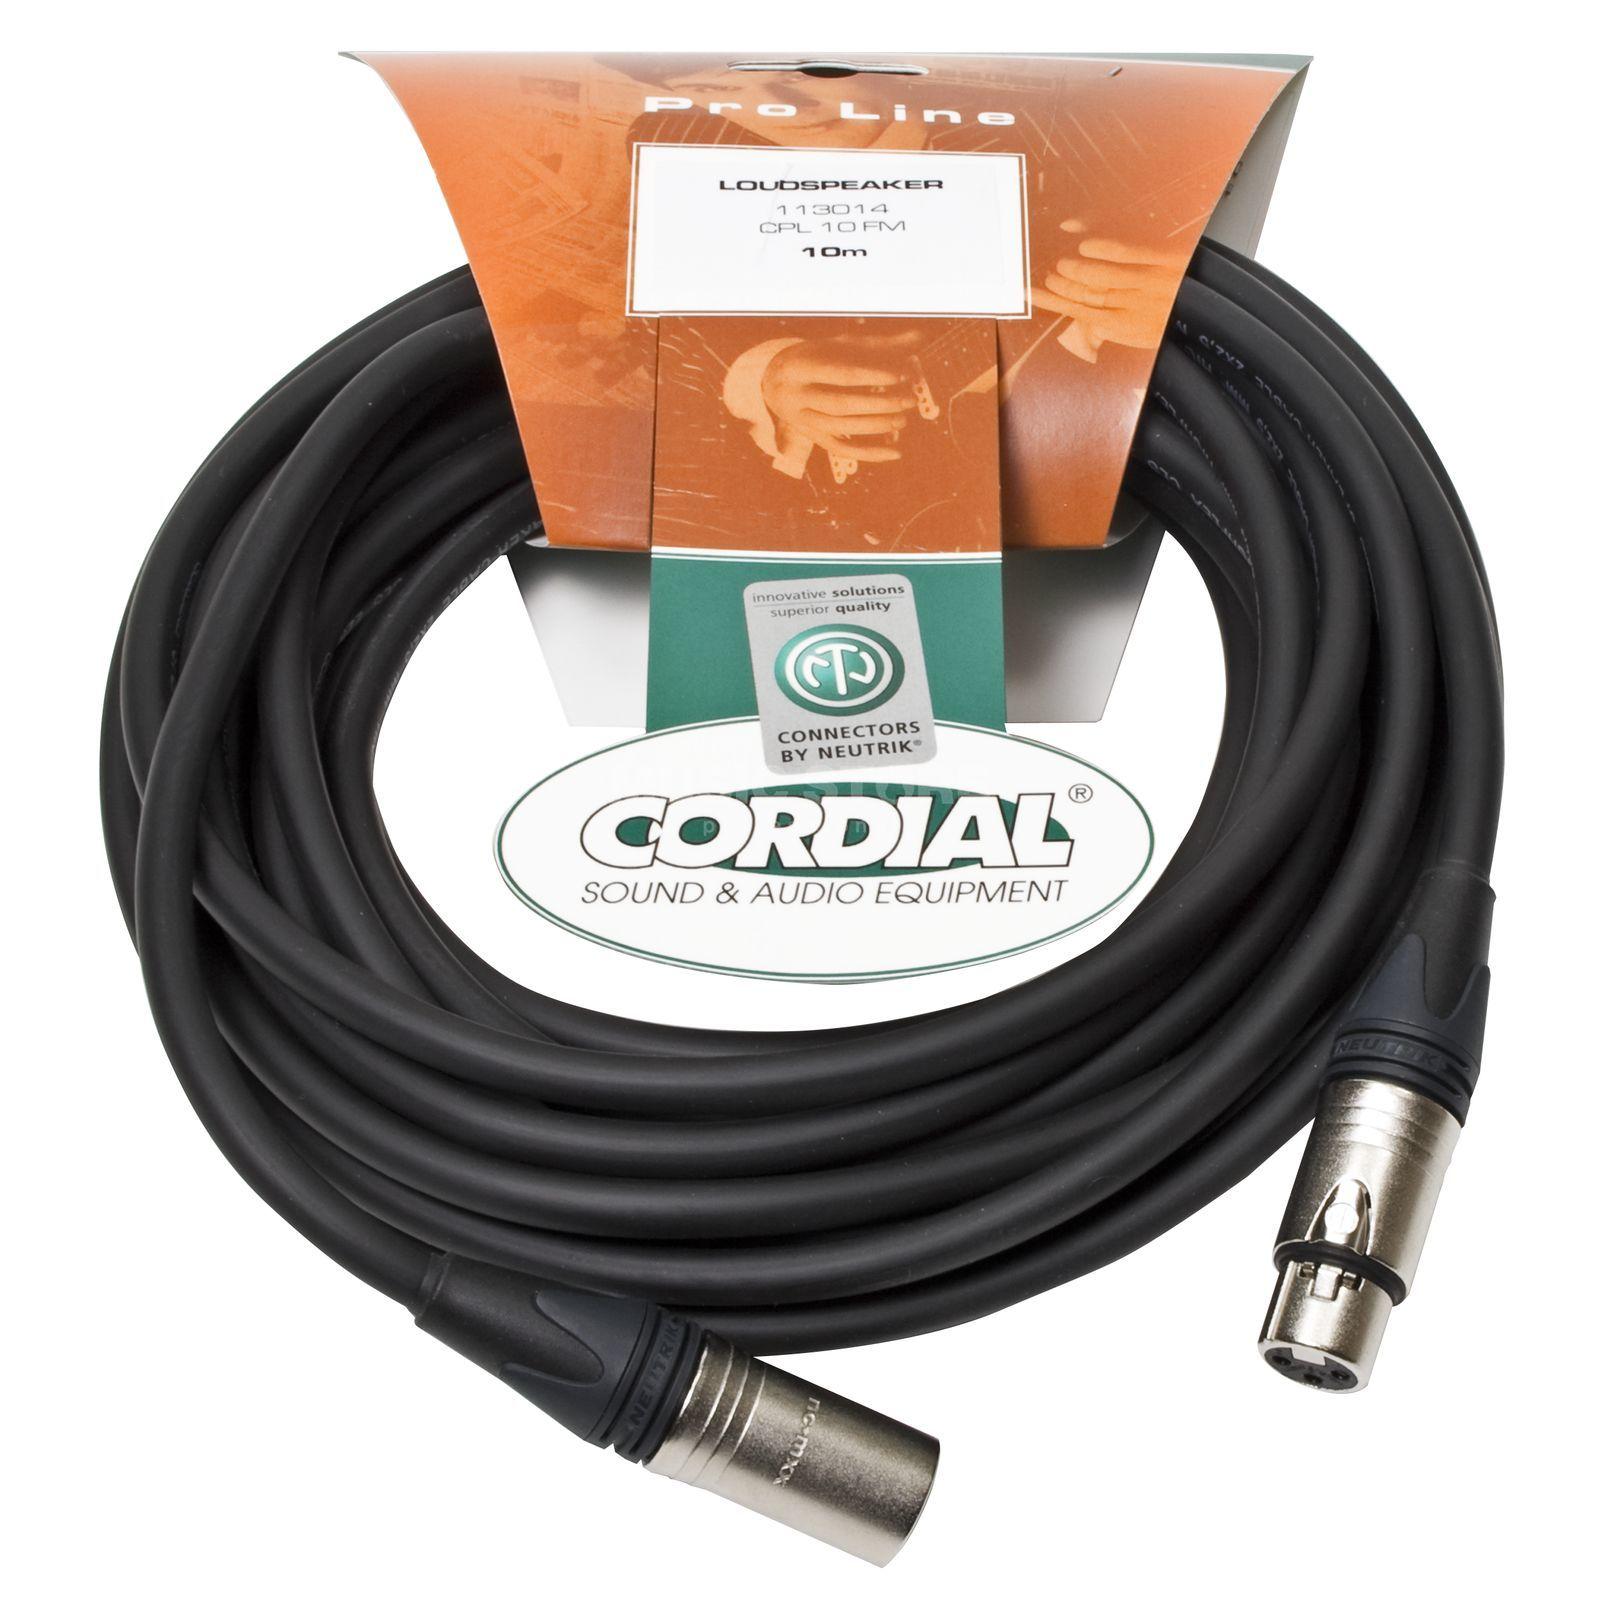 cordial cpl 10 fm peak speaker cable xlr 10m 2x2 5 mm neutrik. Black Bedroom Furniture Sets. Home Design Ideas